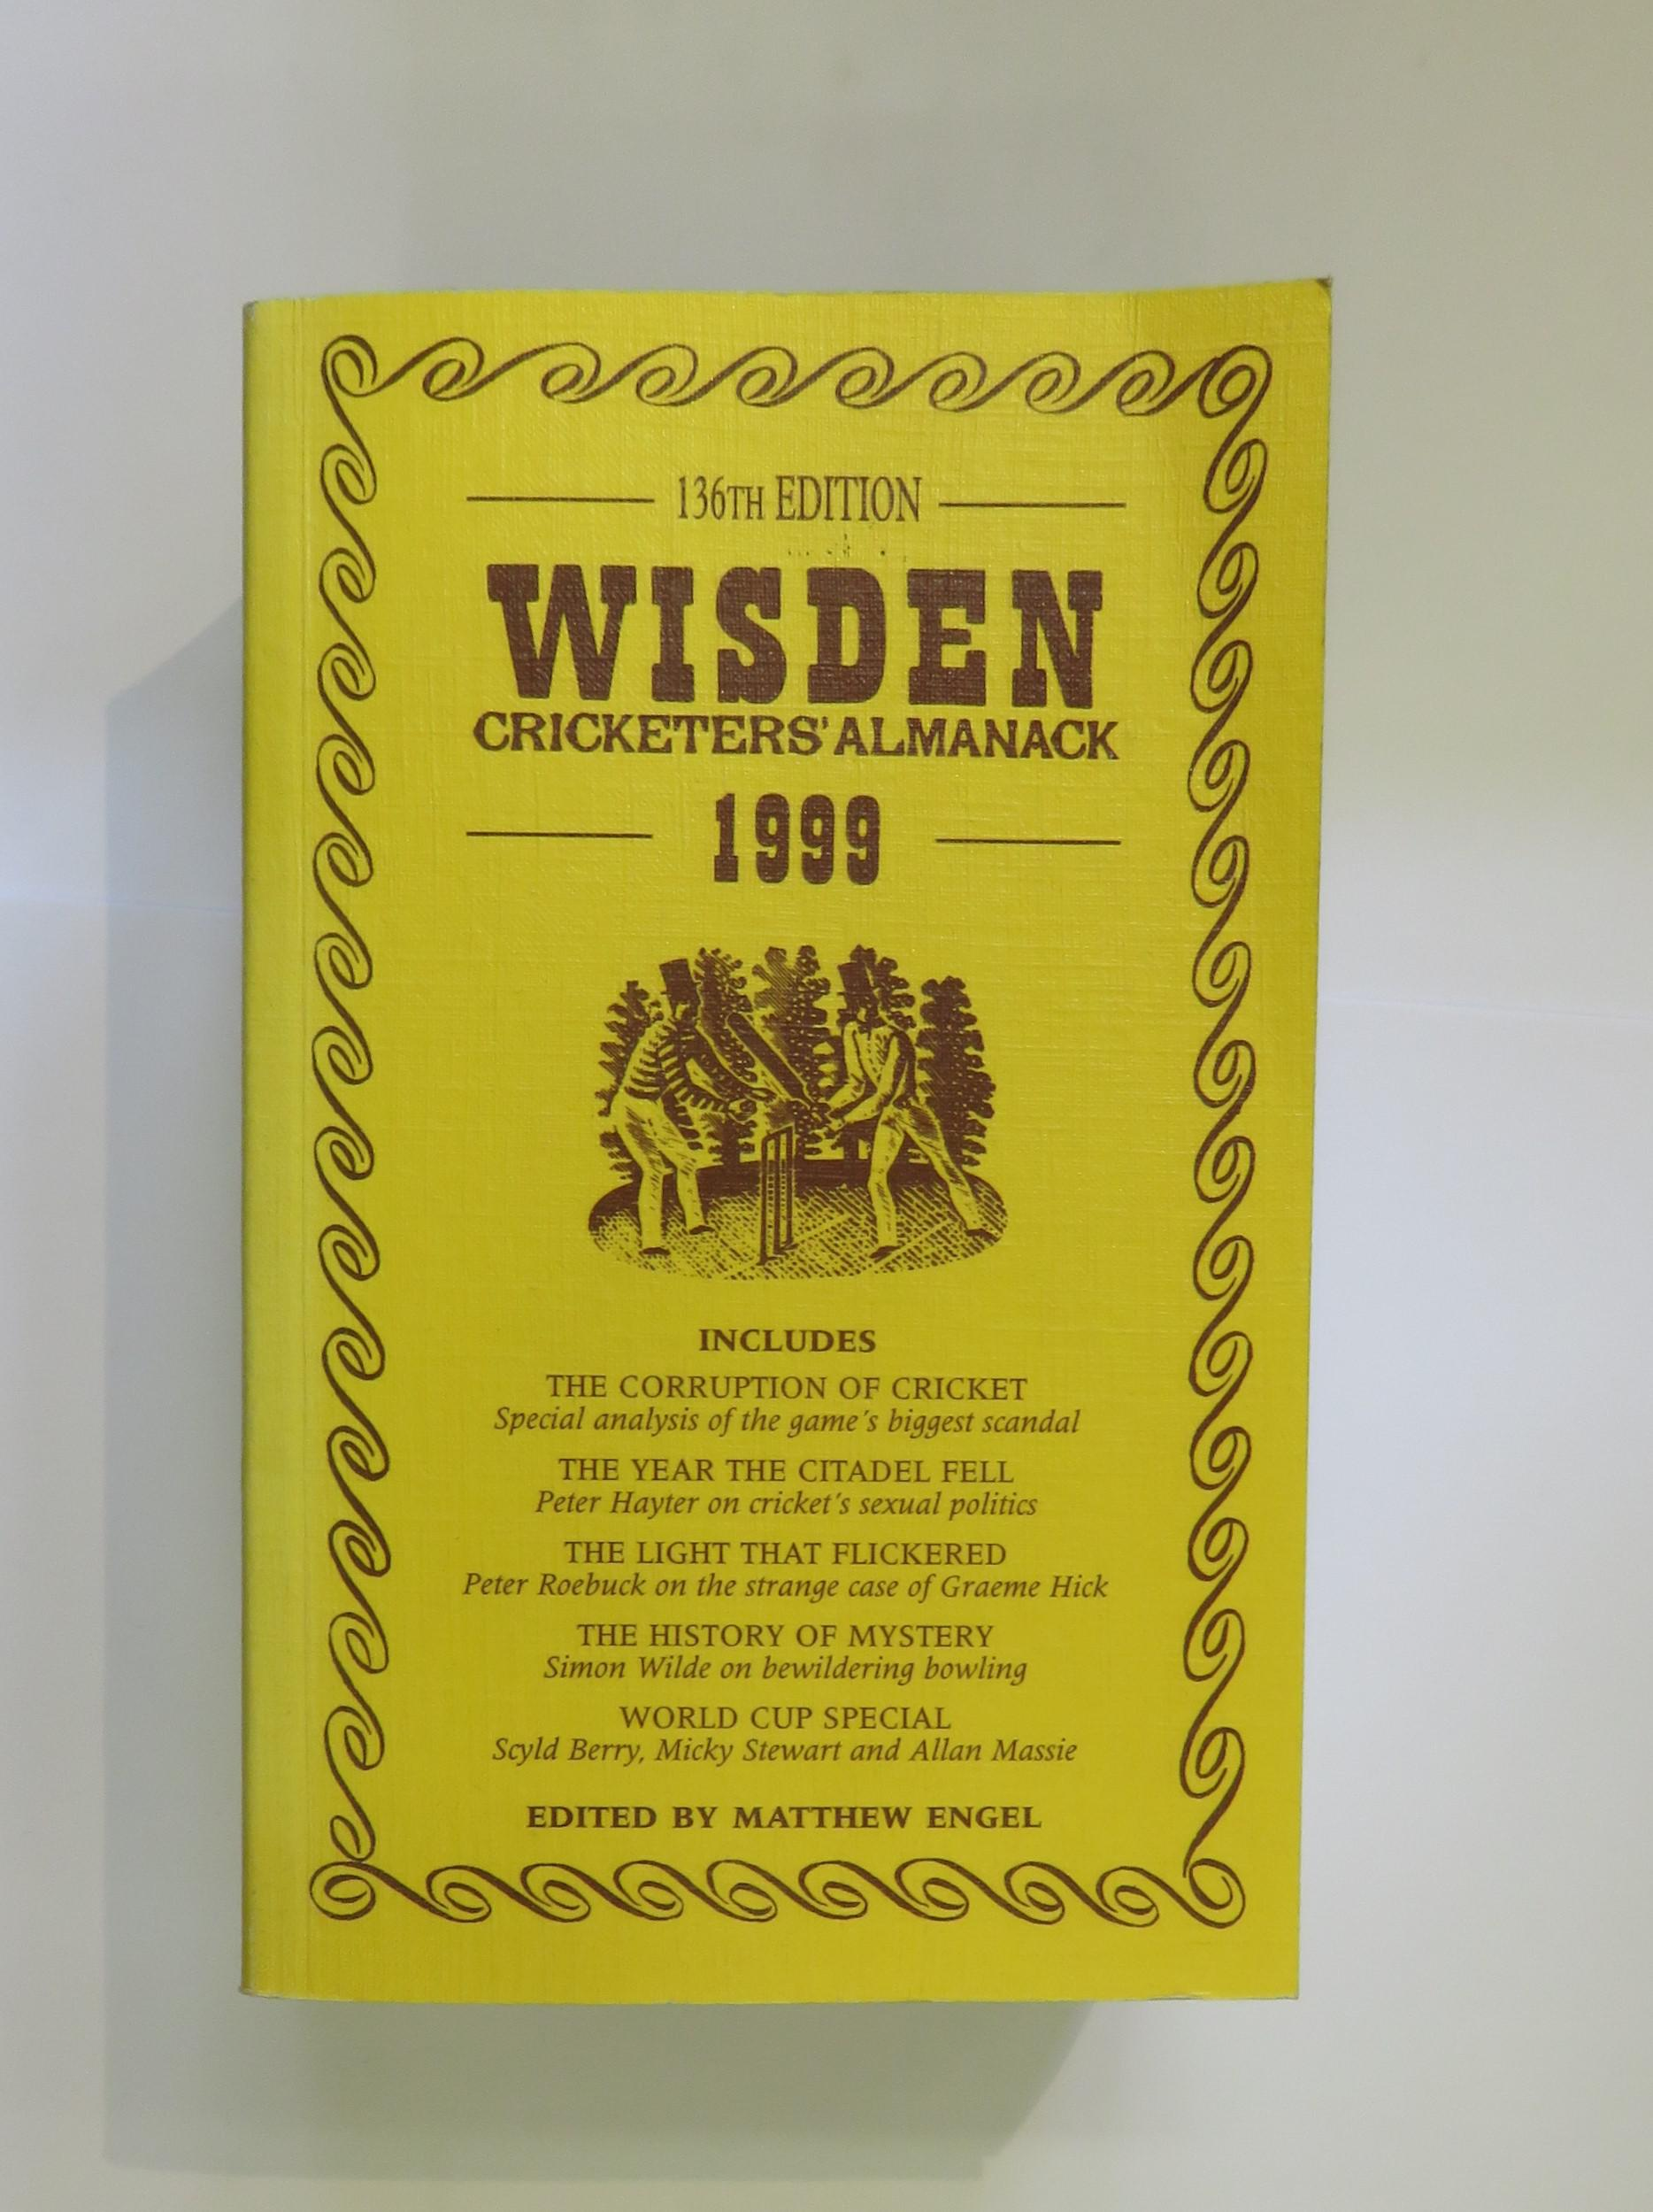 Wisden Cricketers' Almanack 1999